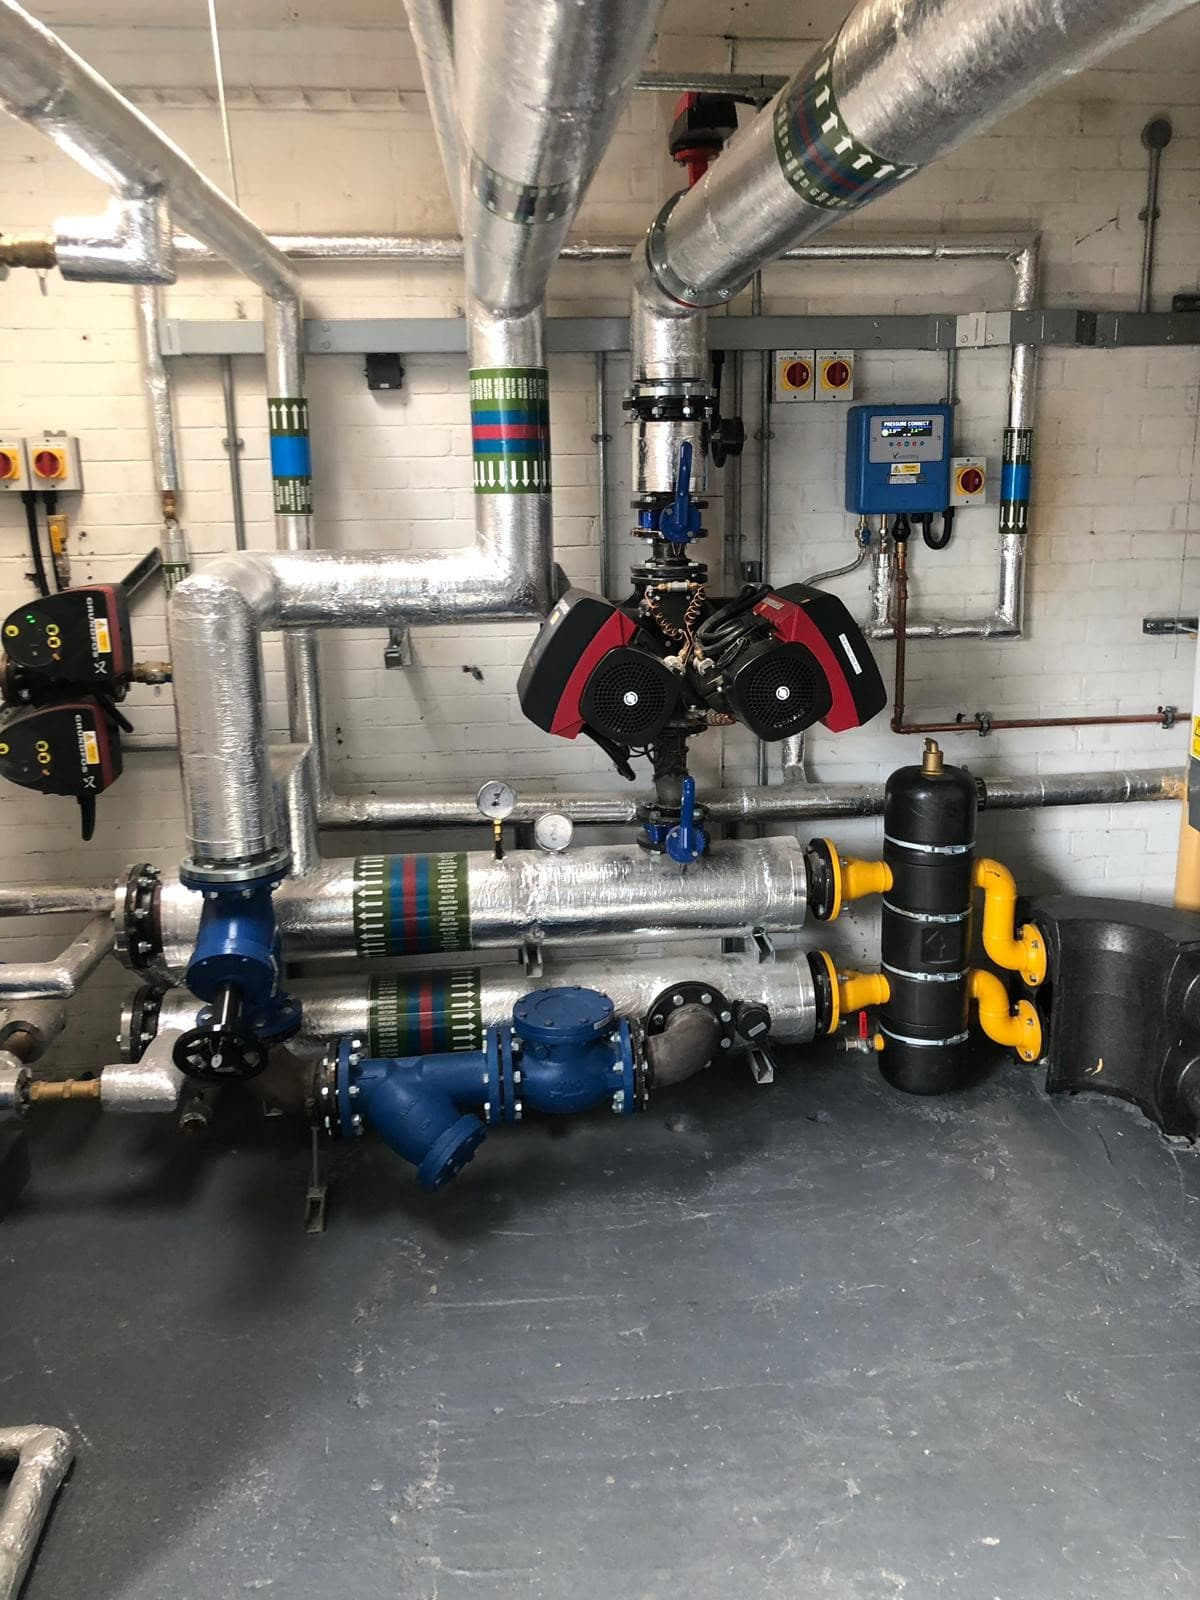 Pipes of a commercial heating system